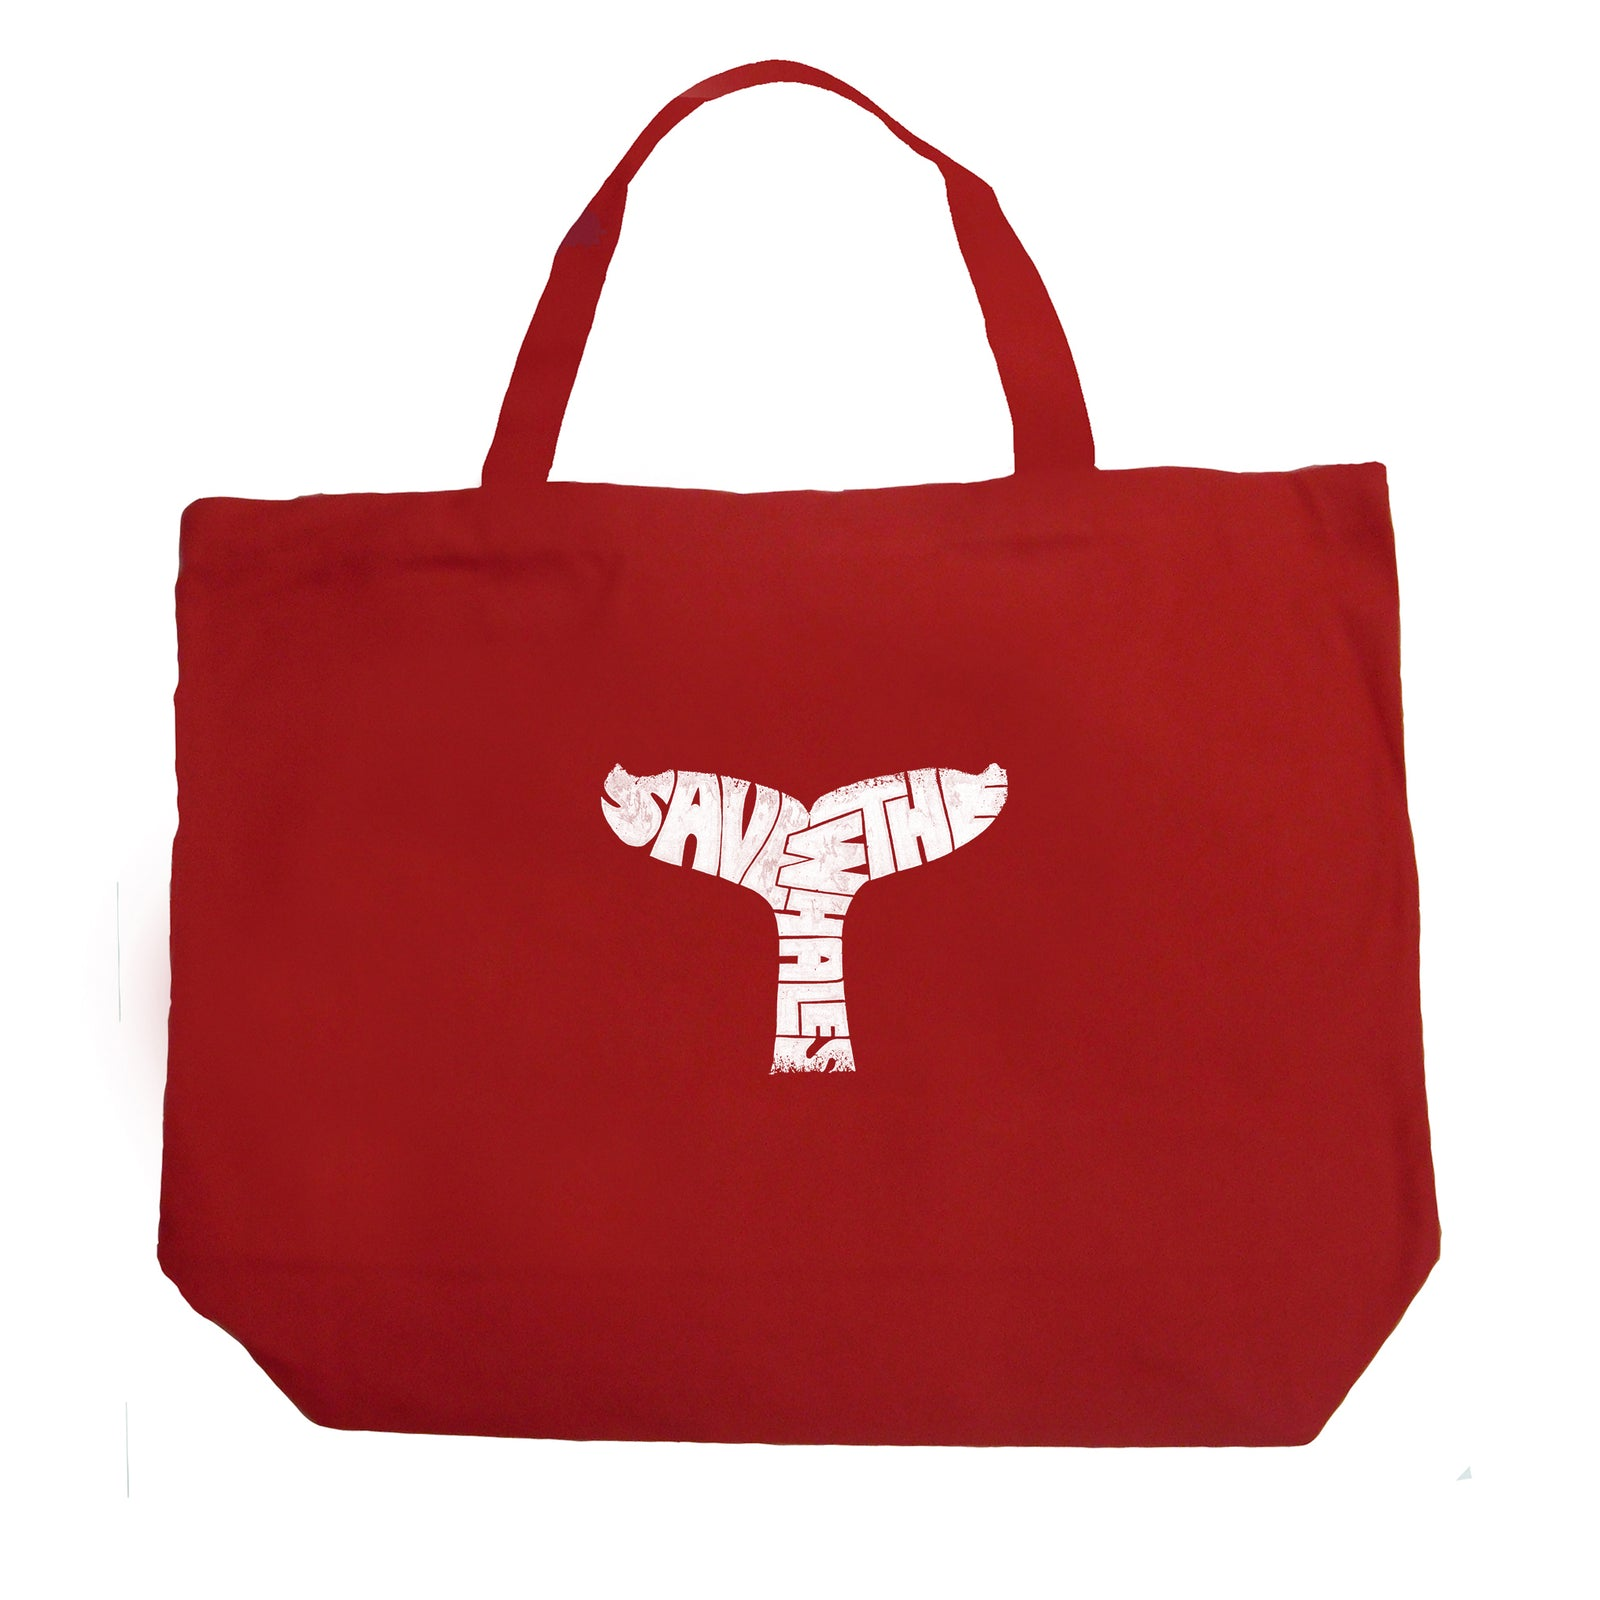 Large Tote Bag - SAVE THE WHALES